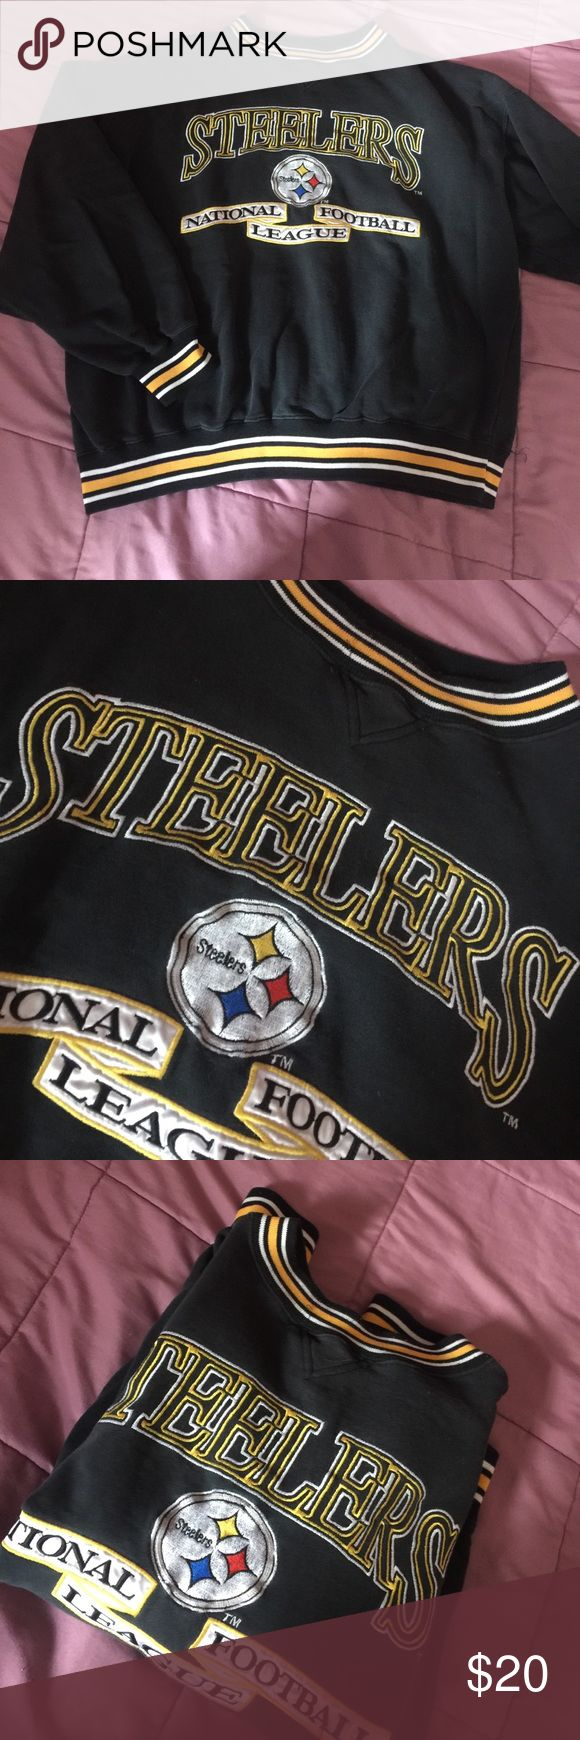 Vintage steelers crew neck Great condition. Oversized sweatshirts looks super cute and vintage with a pair of jeans or leggings. Vintage Sweaters